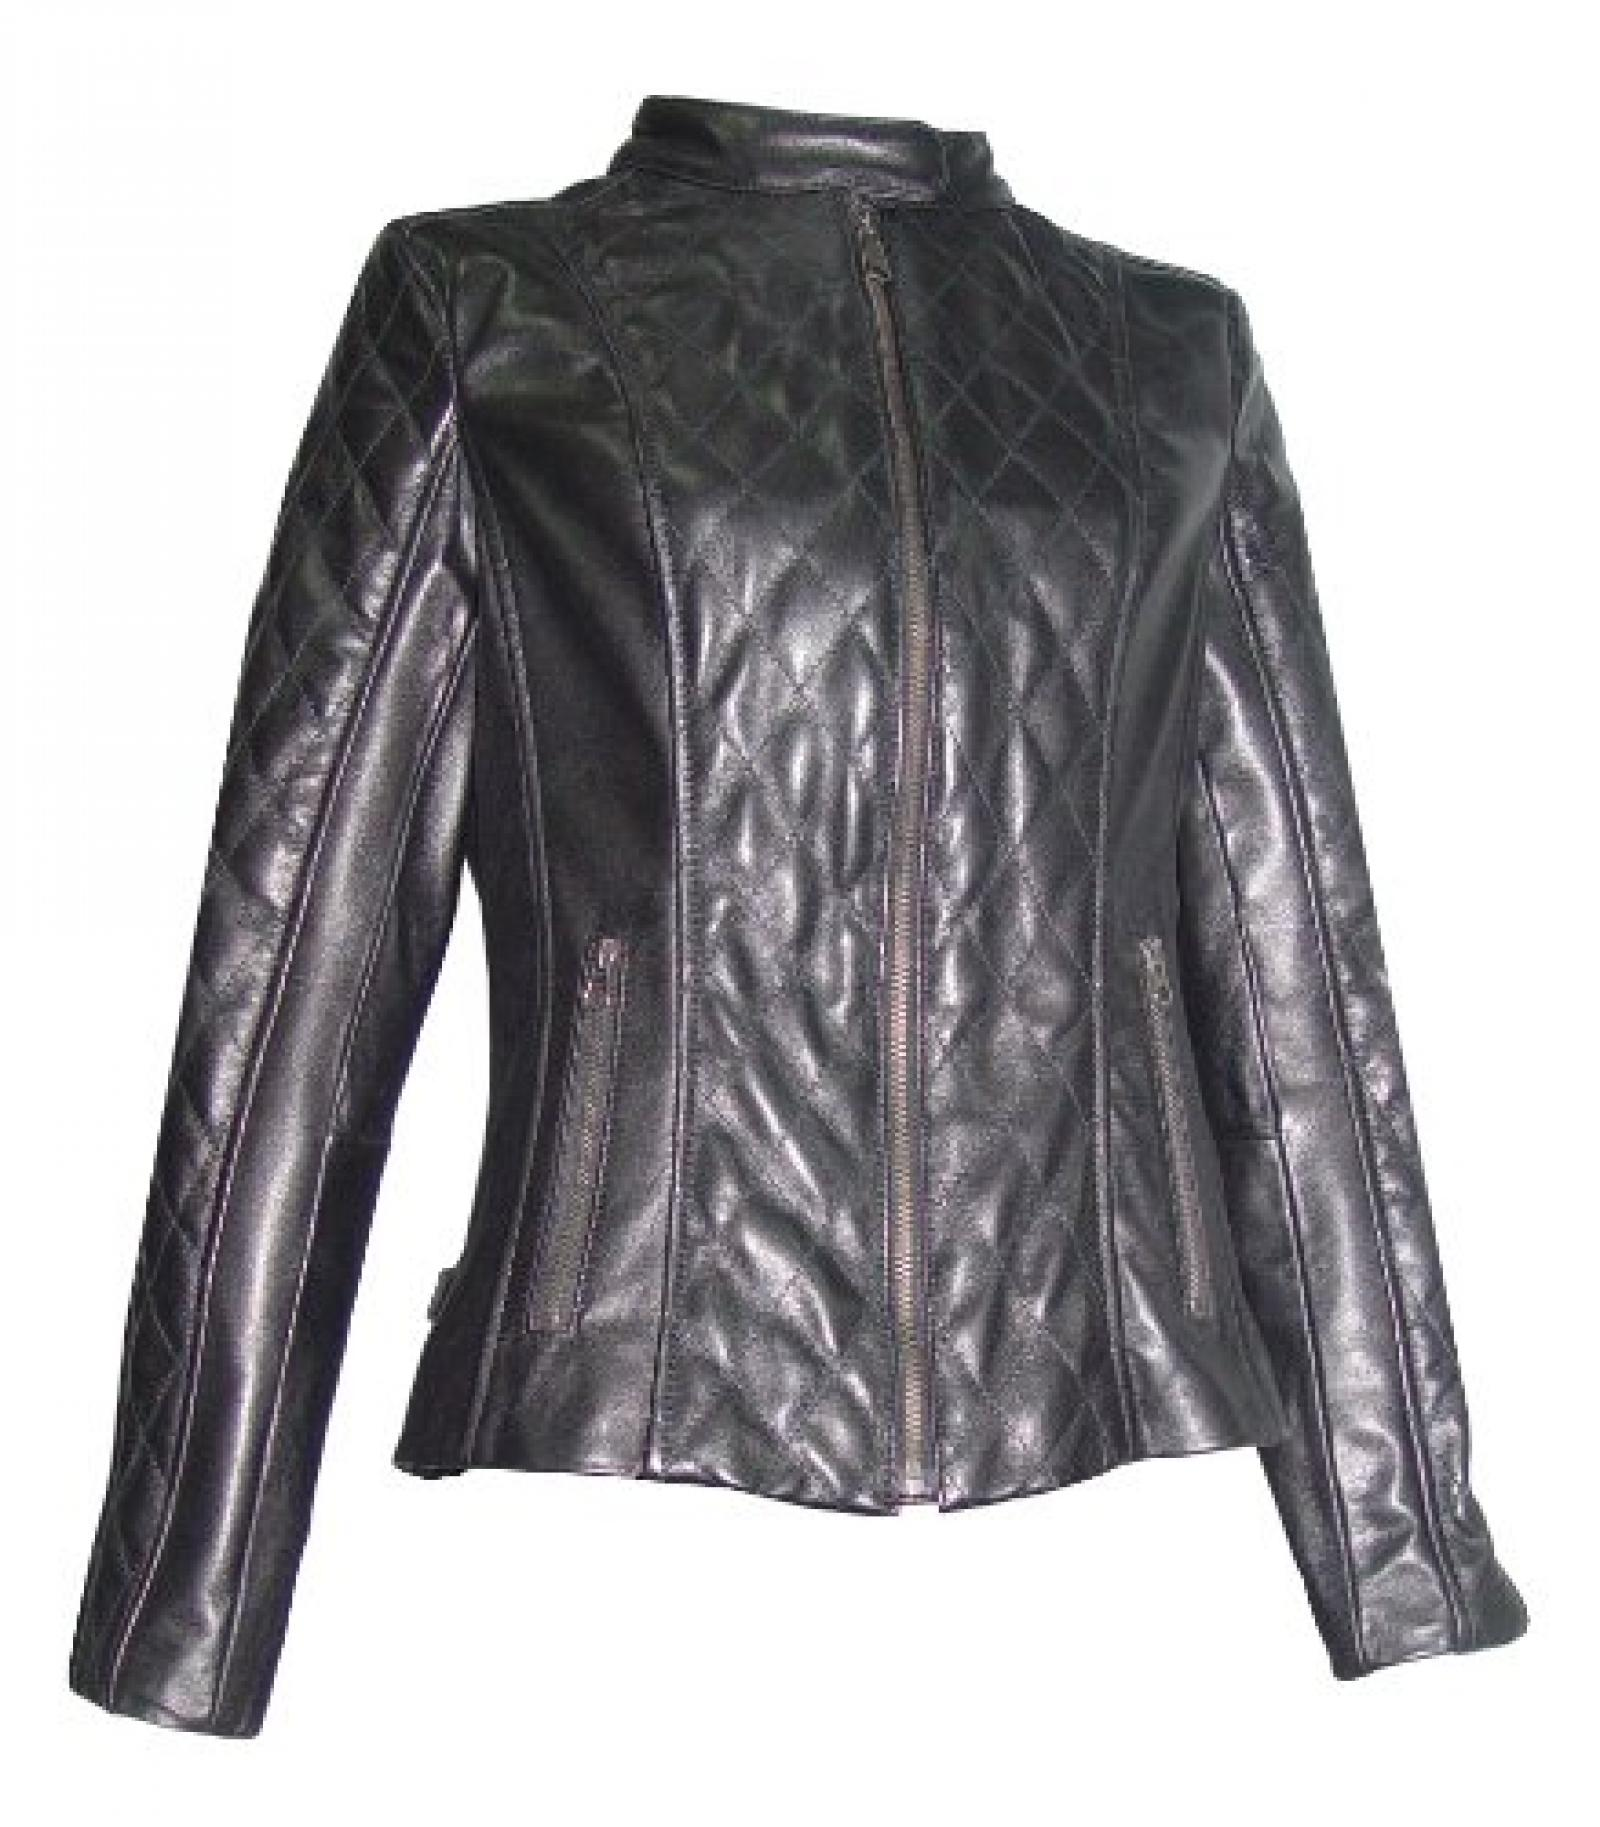 Nettailor Women 4060 Lamb Leather Quilted Moto Jacket